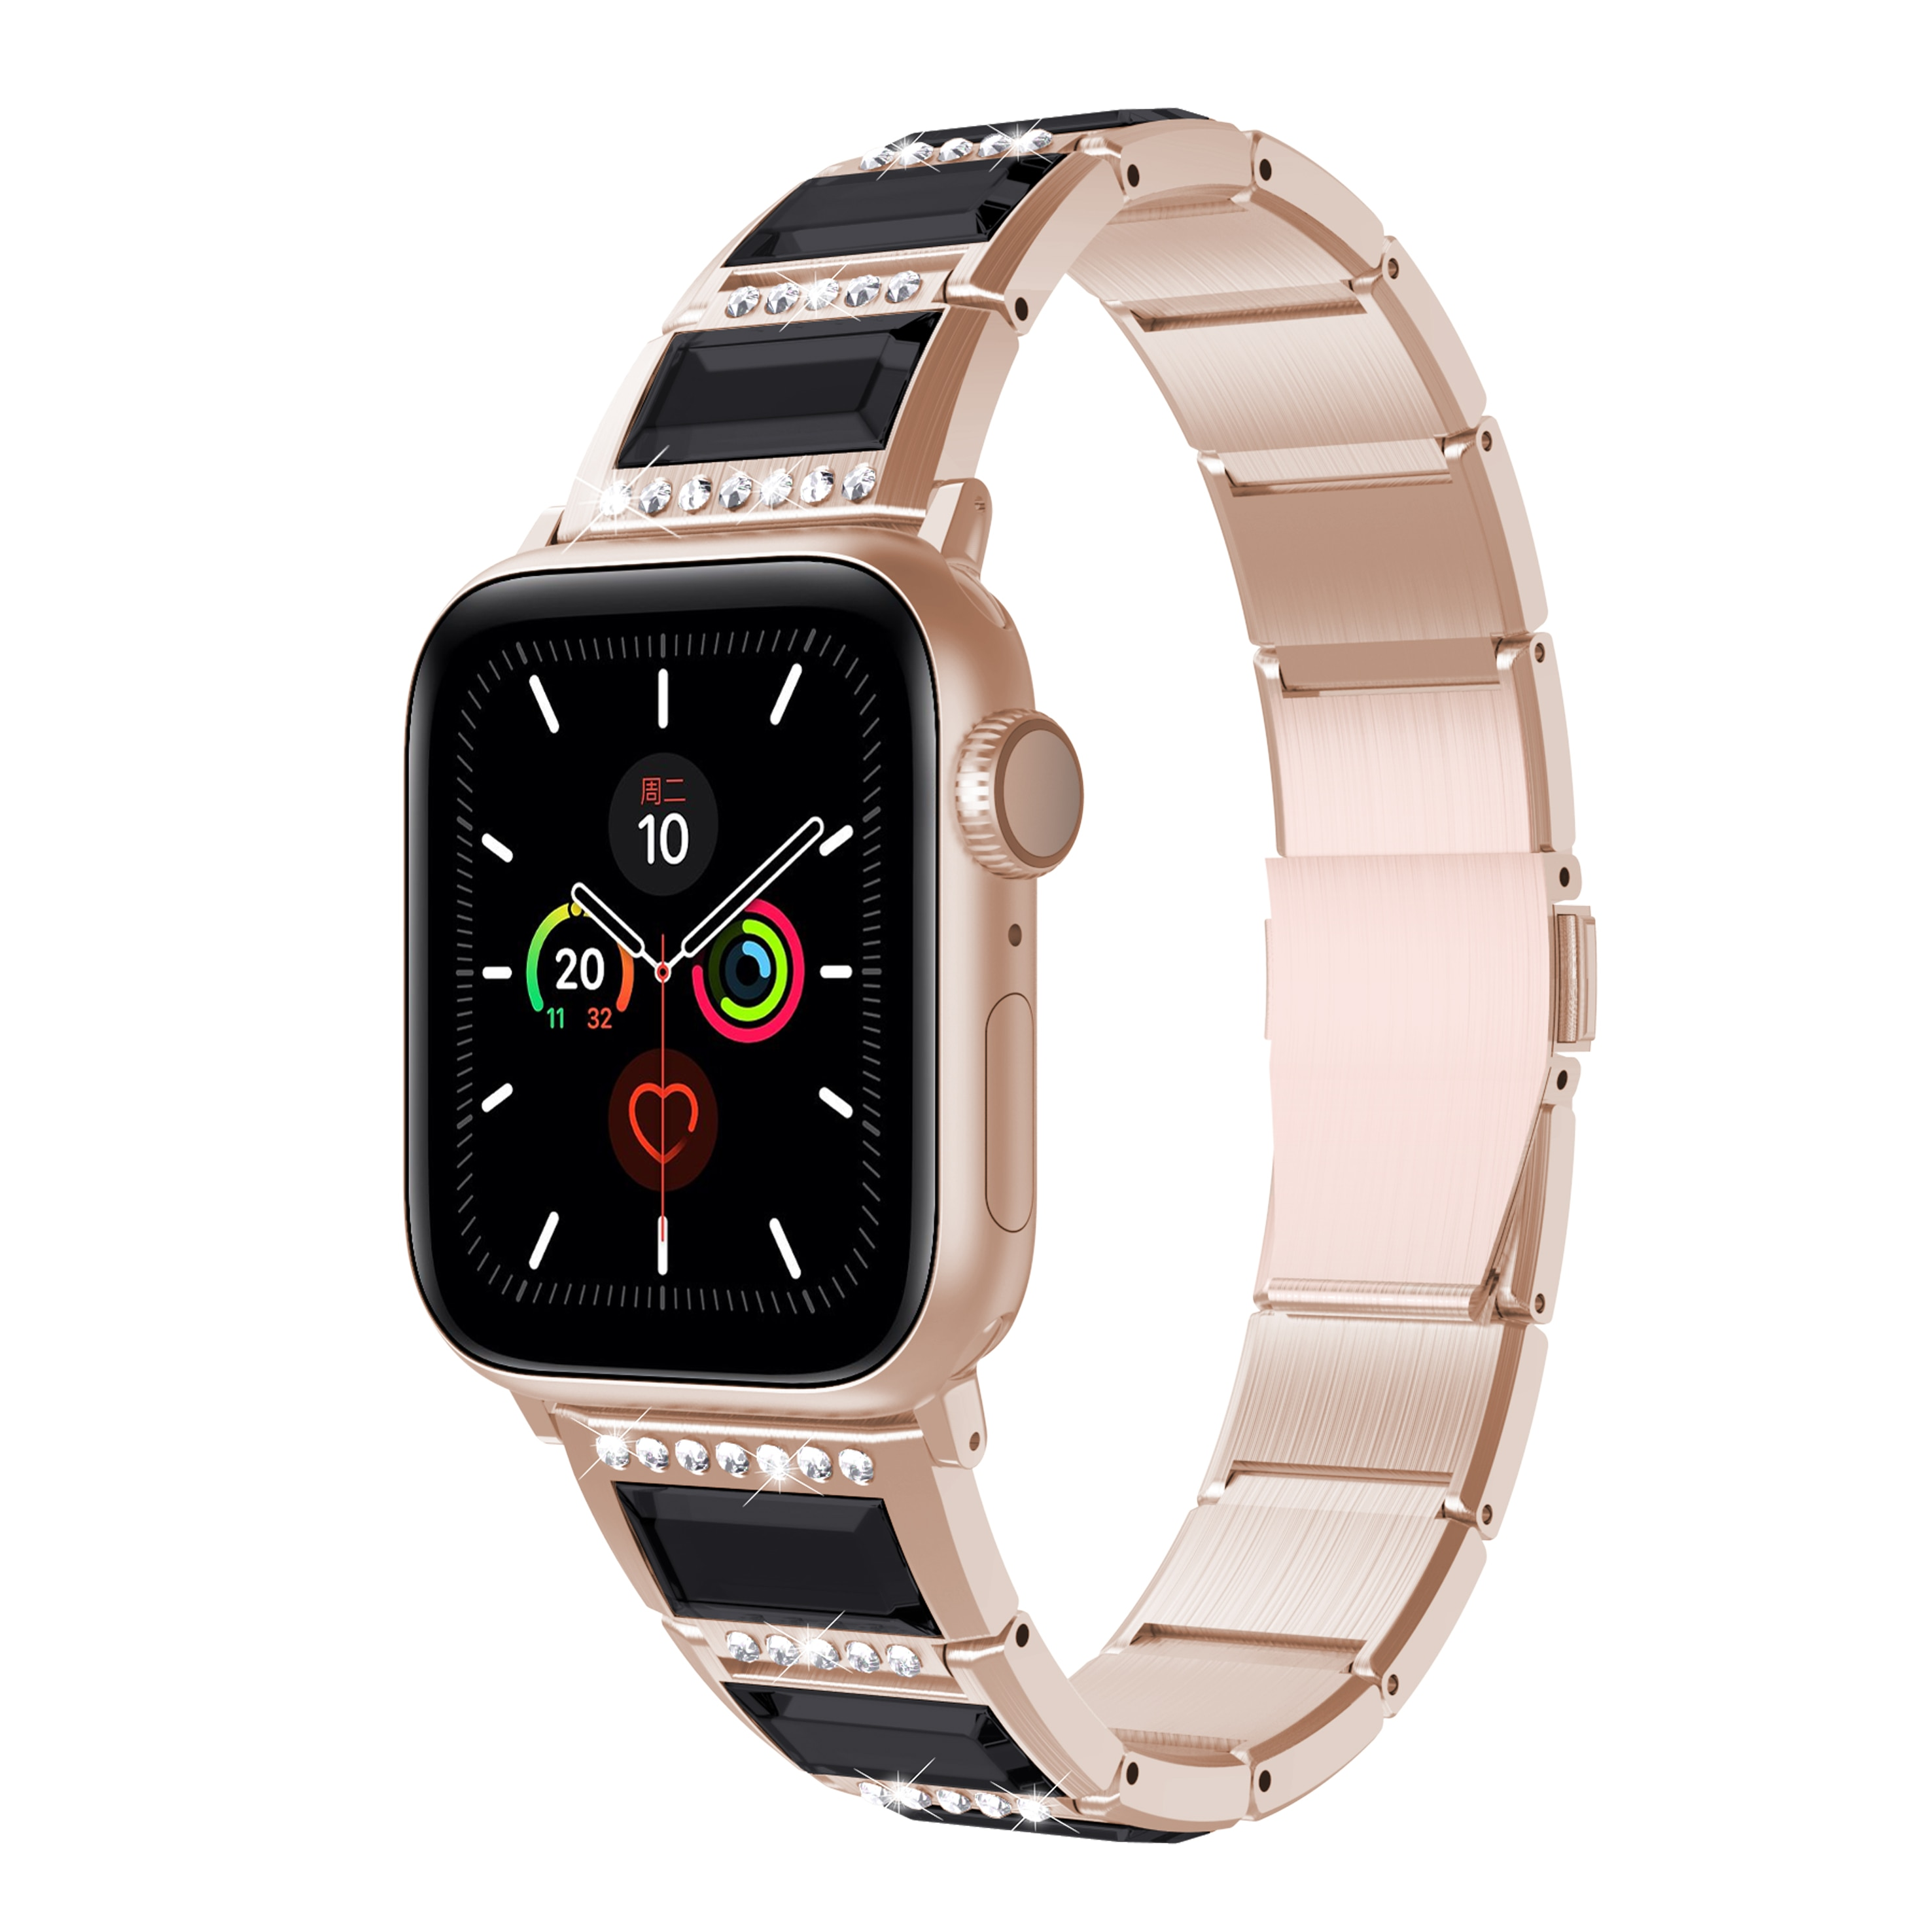 Brandnew Stainless Steel Watchbands For Apple Watch1/2/3/4/5 Jade Wristband Smart Watch Fashion Jewe